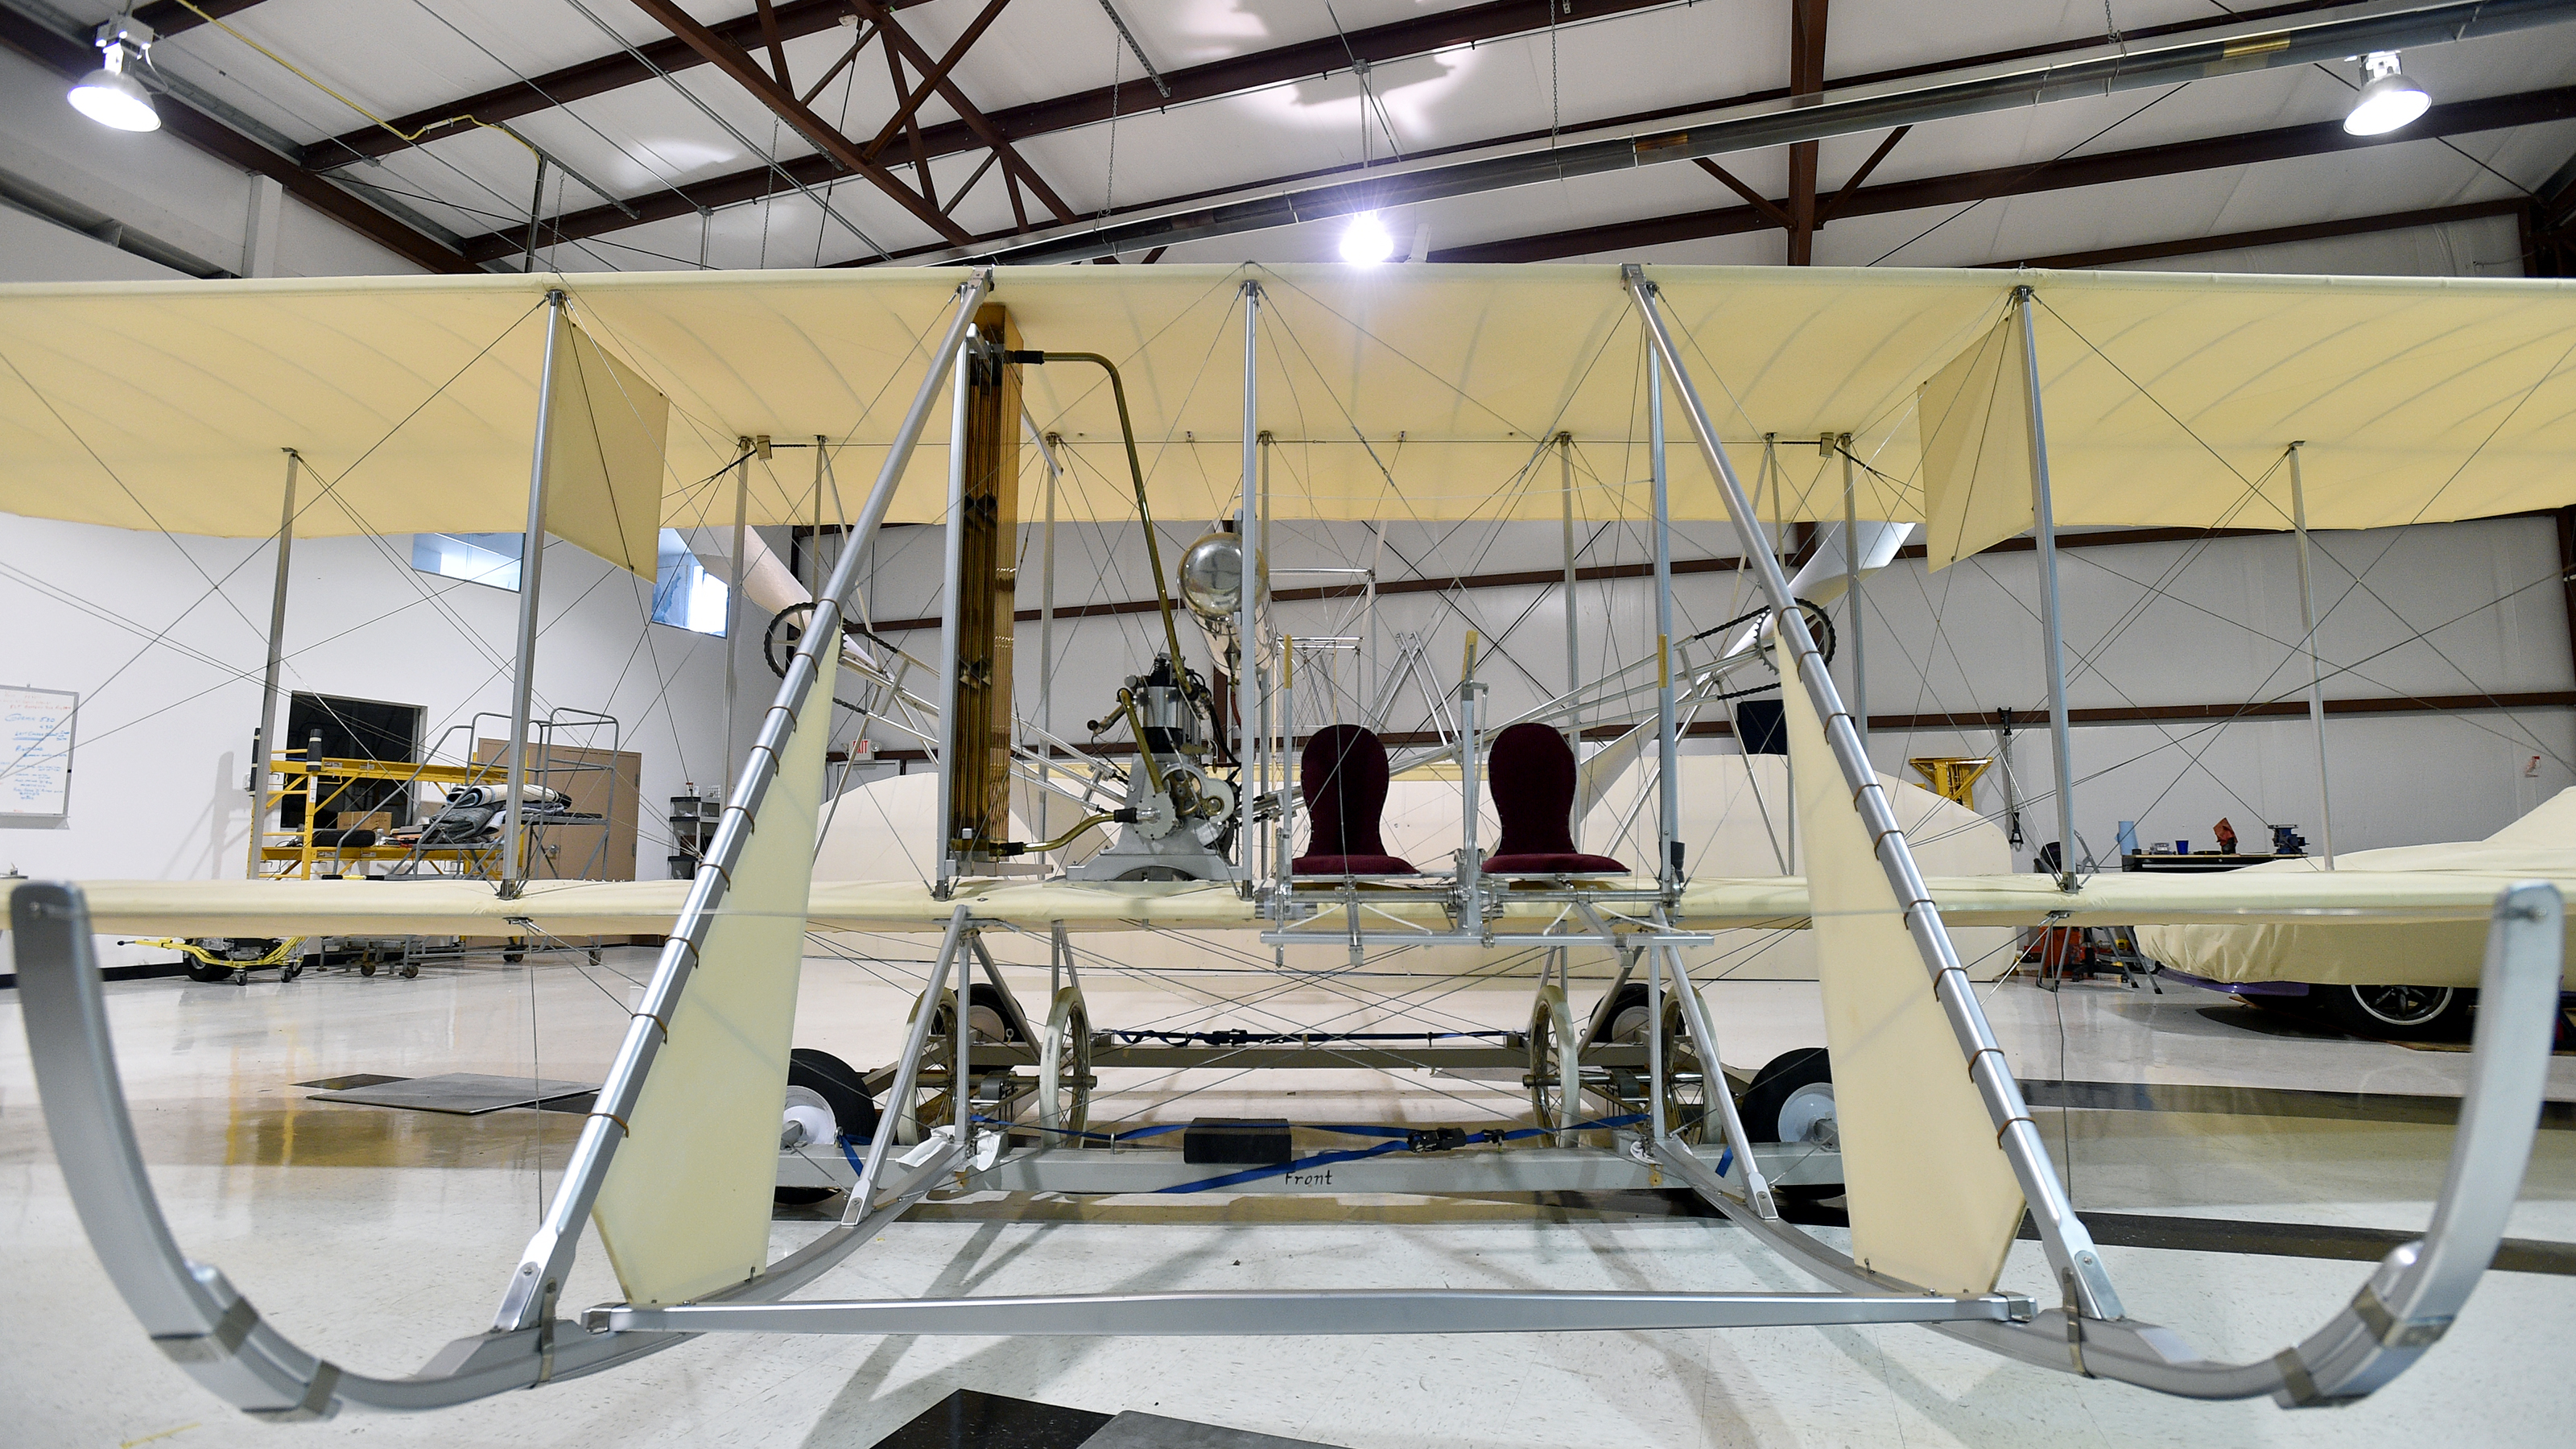 A 1911 Wright Flyer B re-creation shows the ingenuity the Wright brothers deployed to design and build their flying machine. The pilot sits to the outside and a student sits inside, next to the engine. Photo by David Tulis.